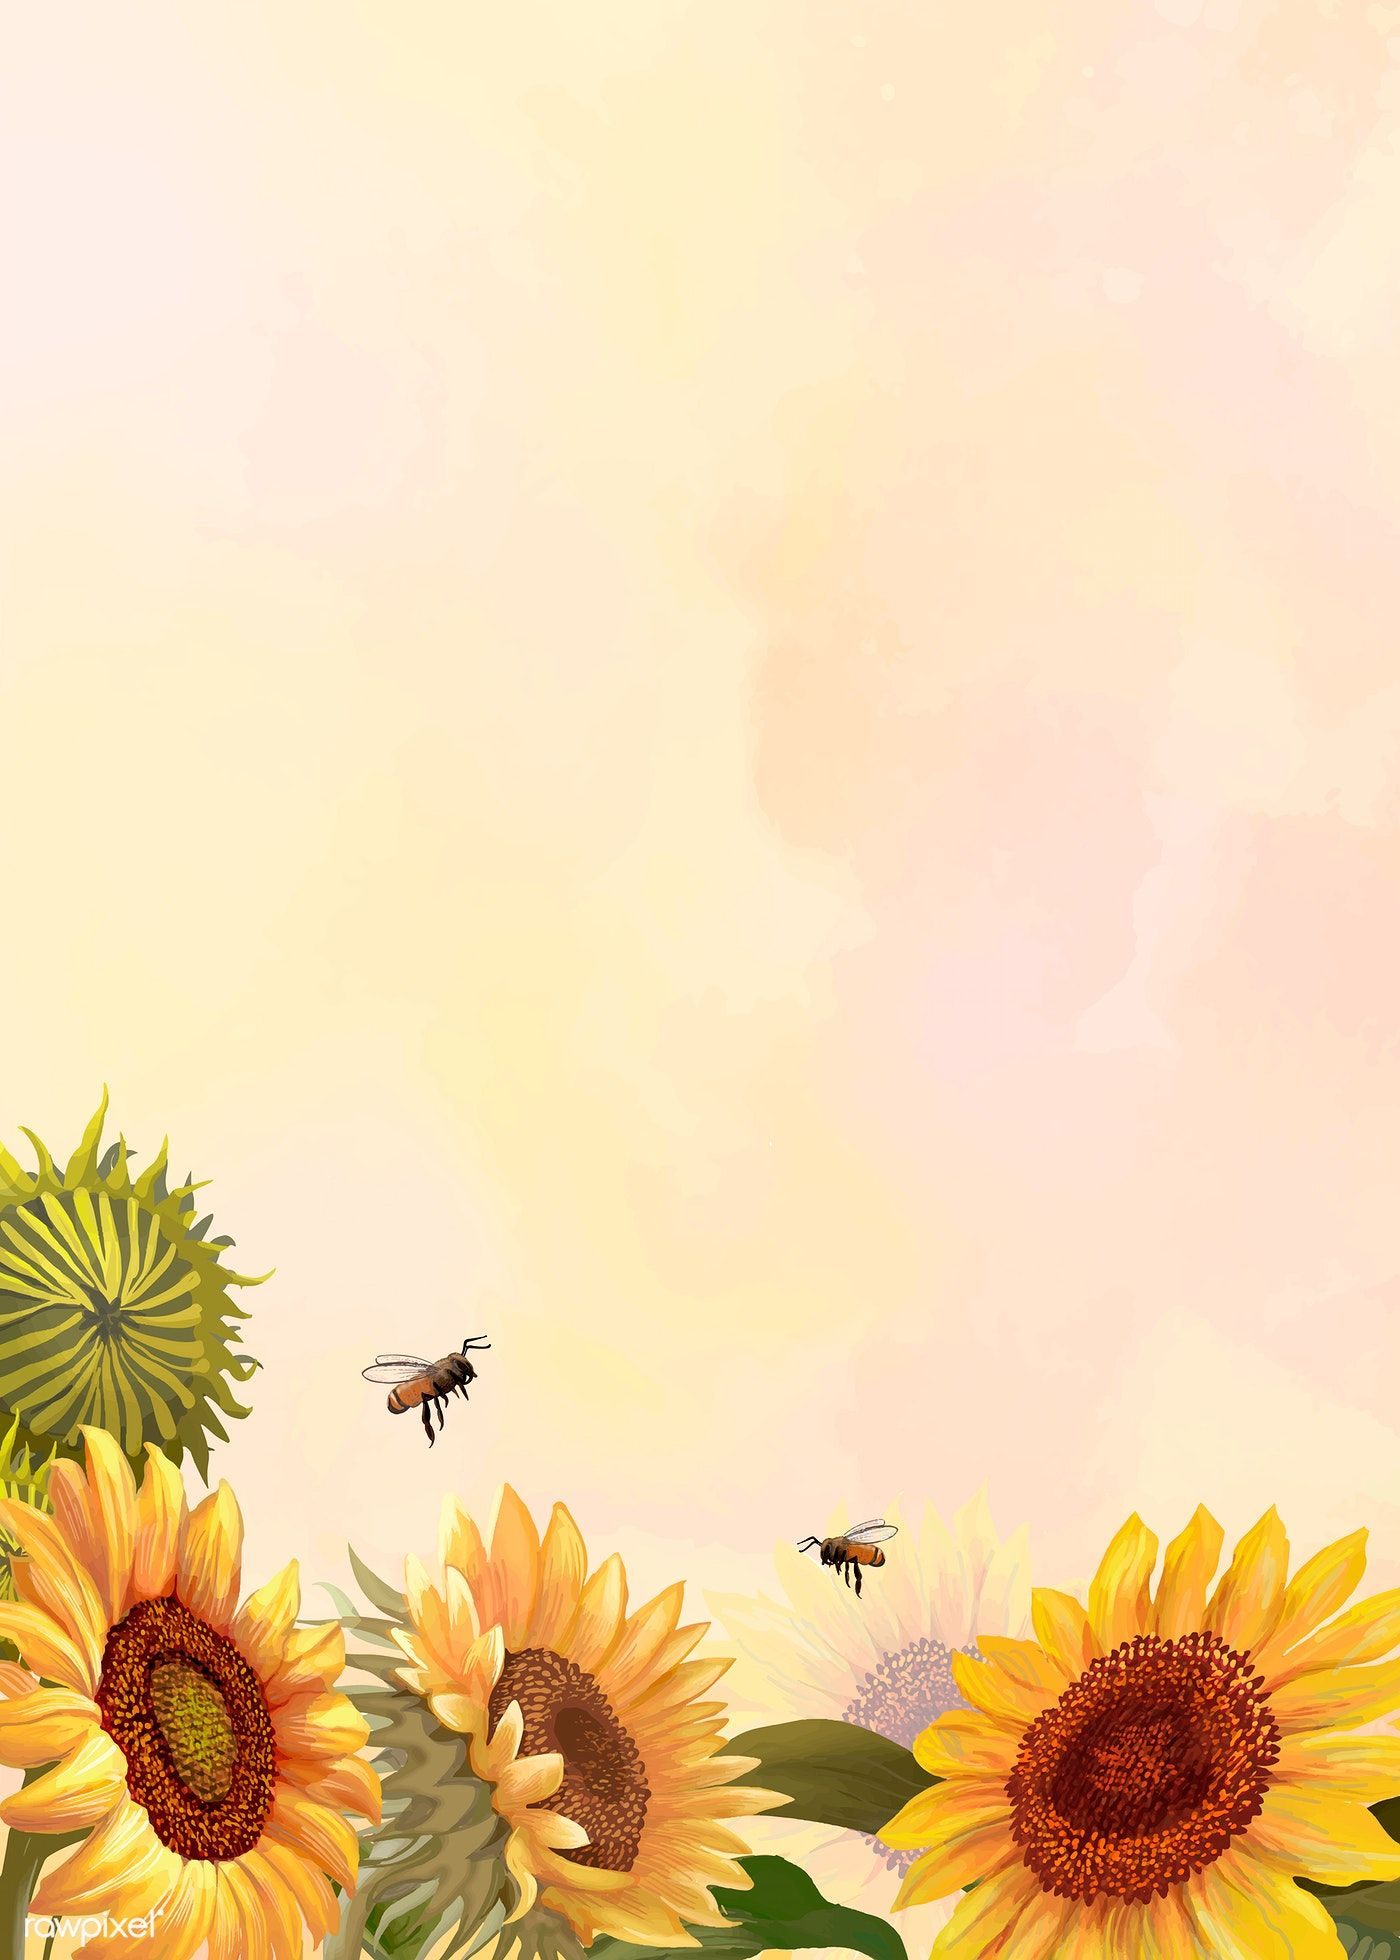 Download Premium Vector Of Hand Drawn Sunflower On A Yellow